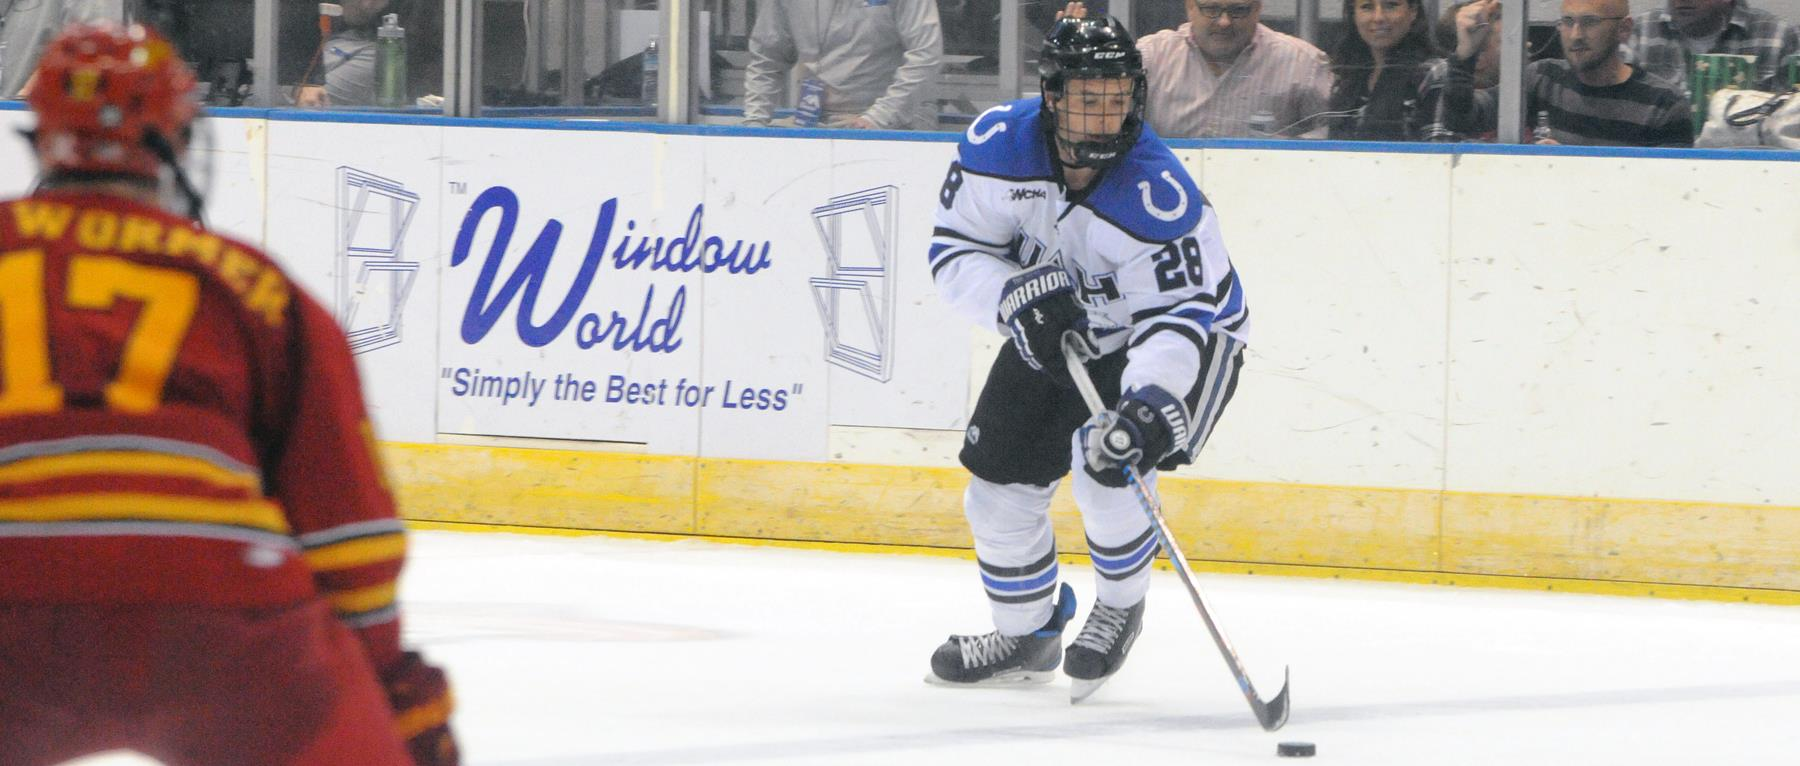 WCHA: Chargers Drop Series Finale To Ferris State Sunday